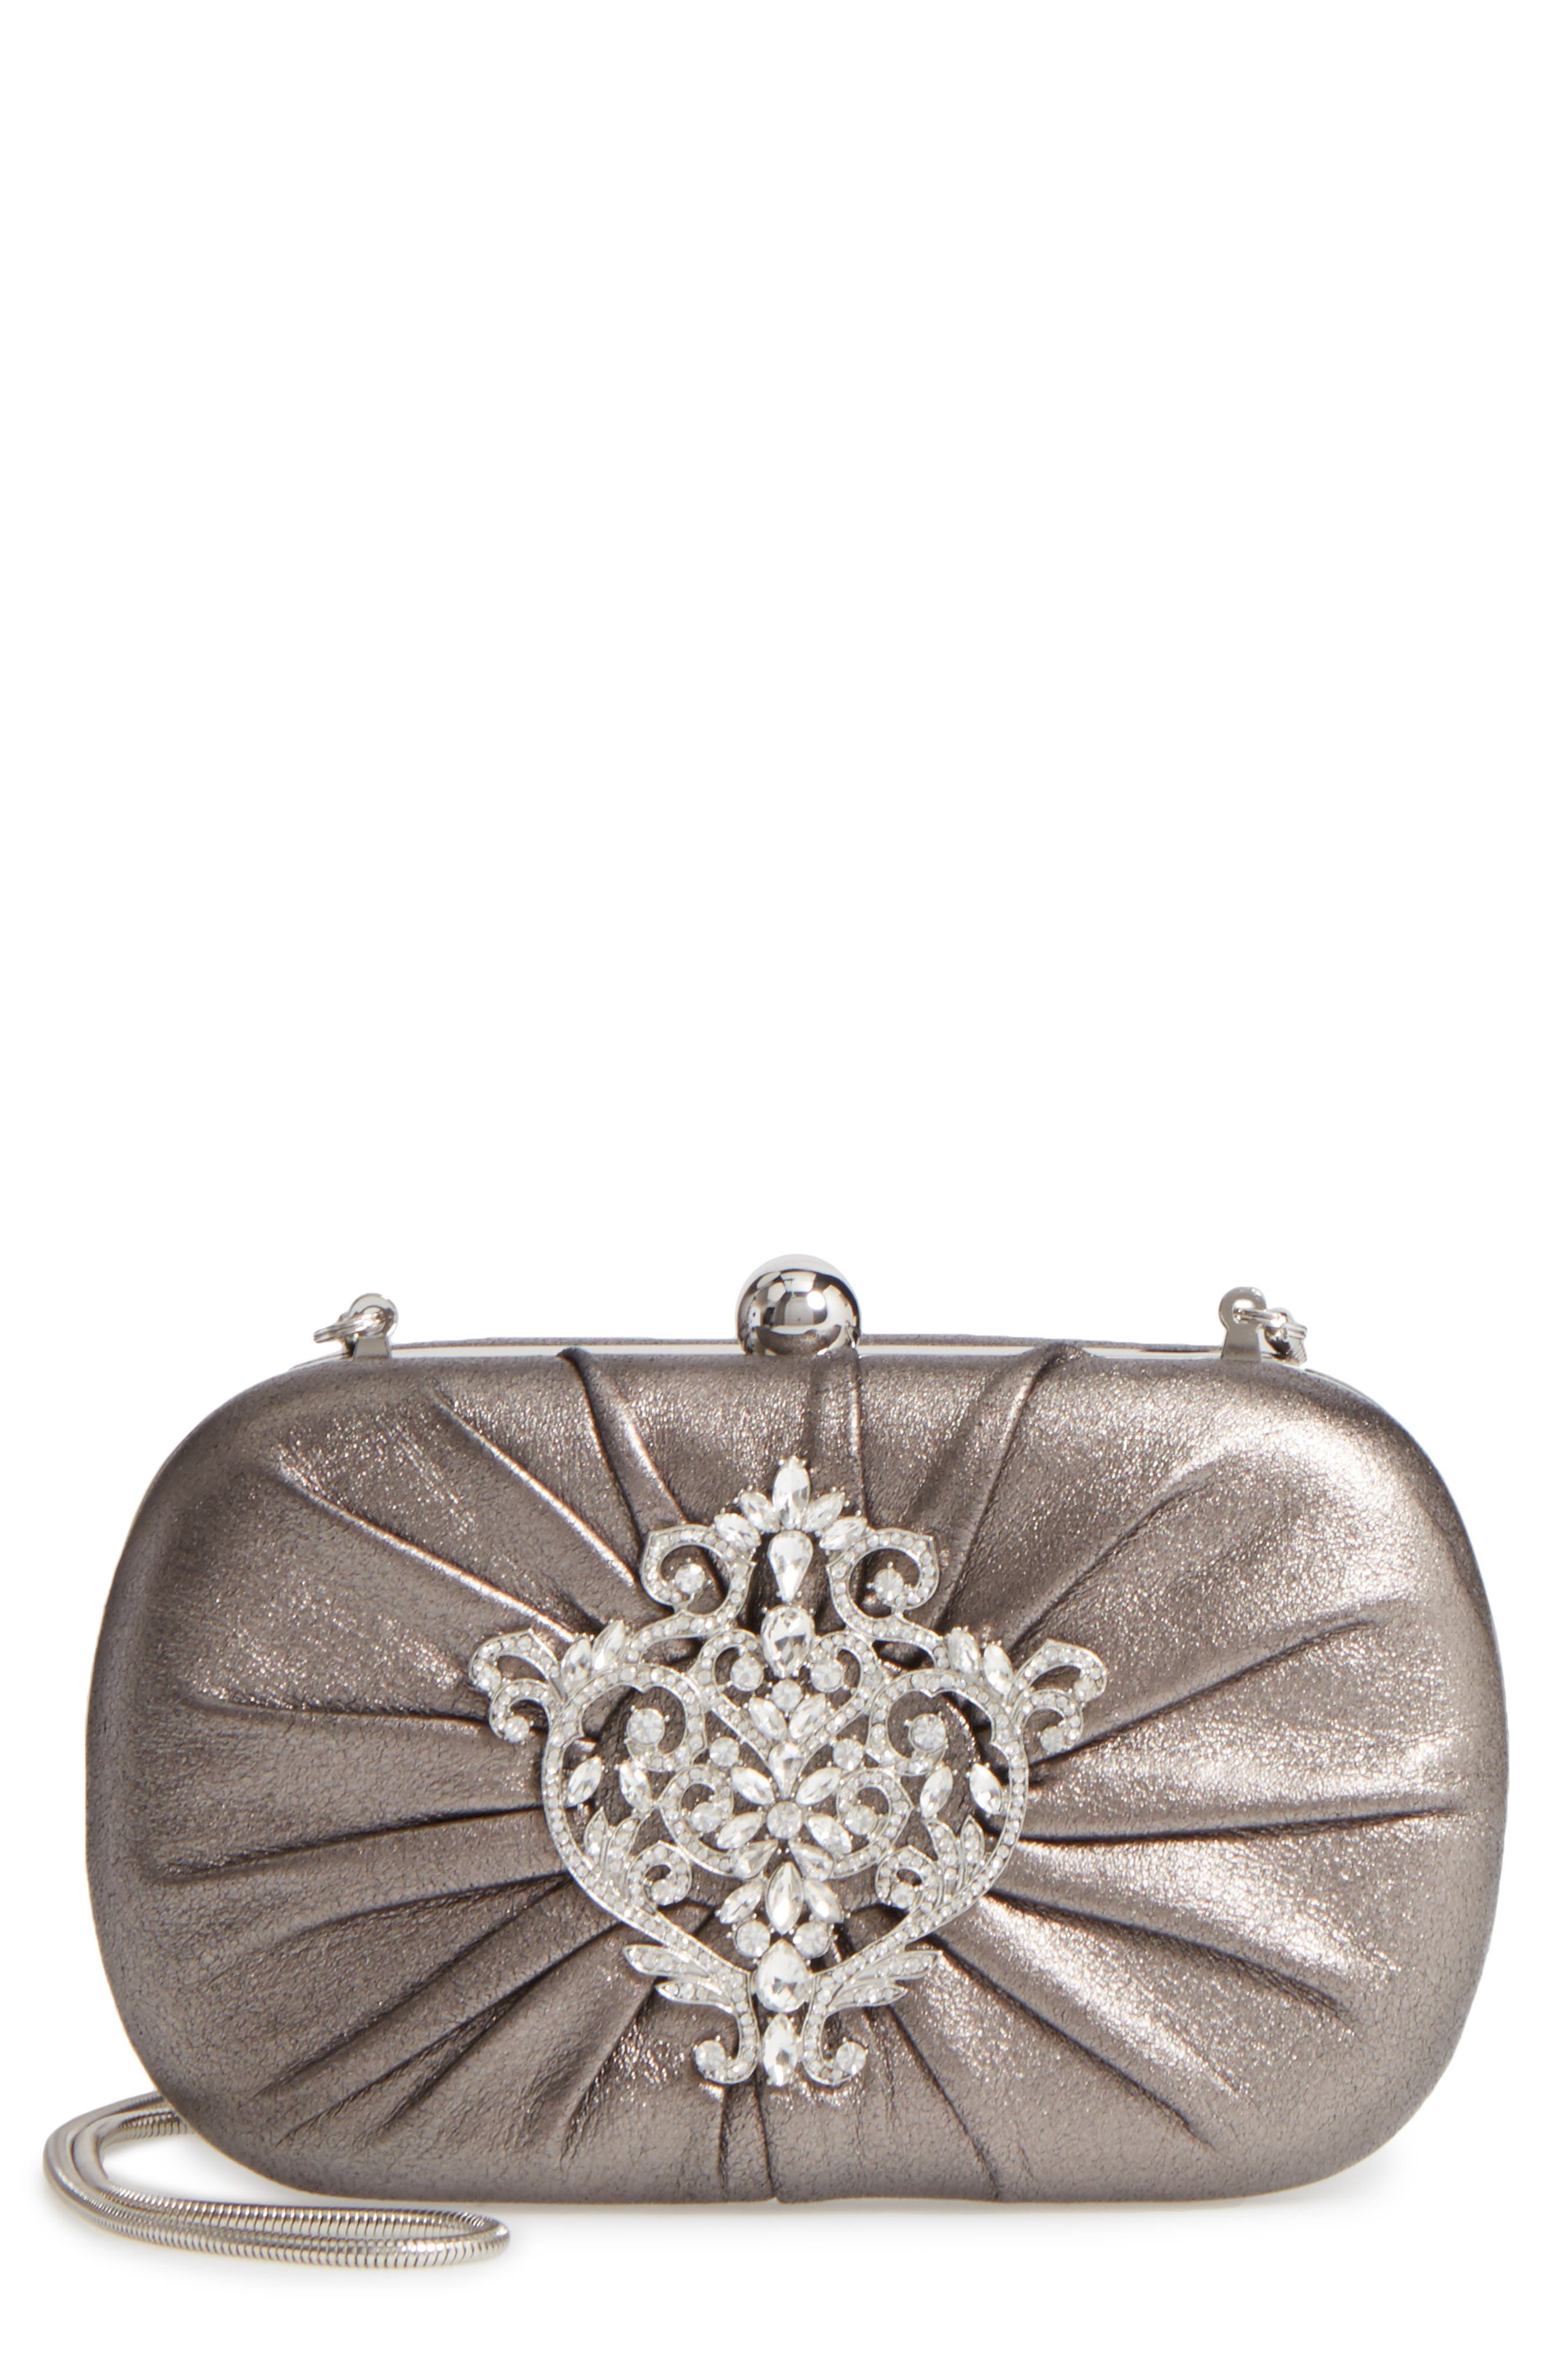 Badgley Mischka Diva Metallic Leather Clutch